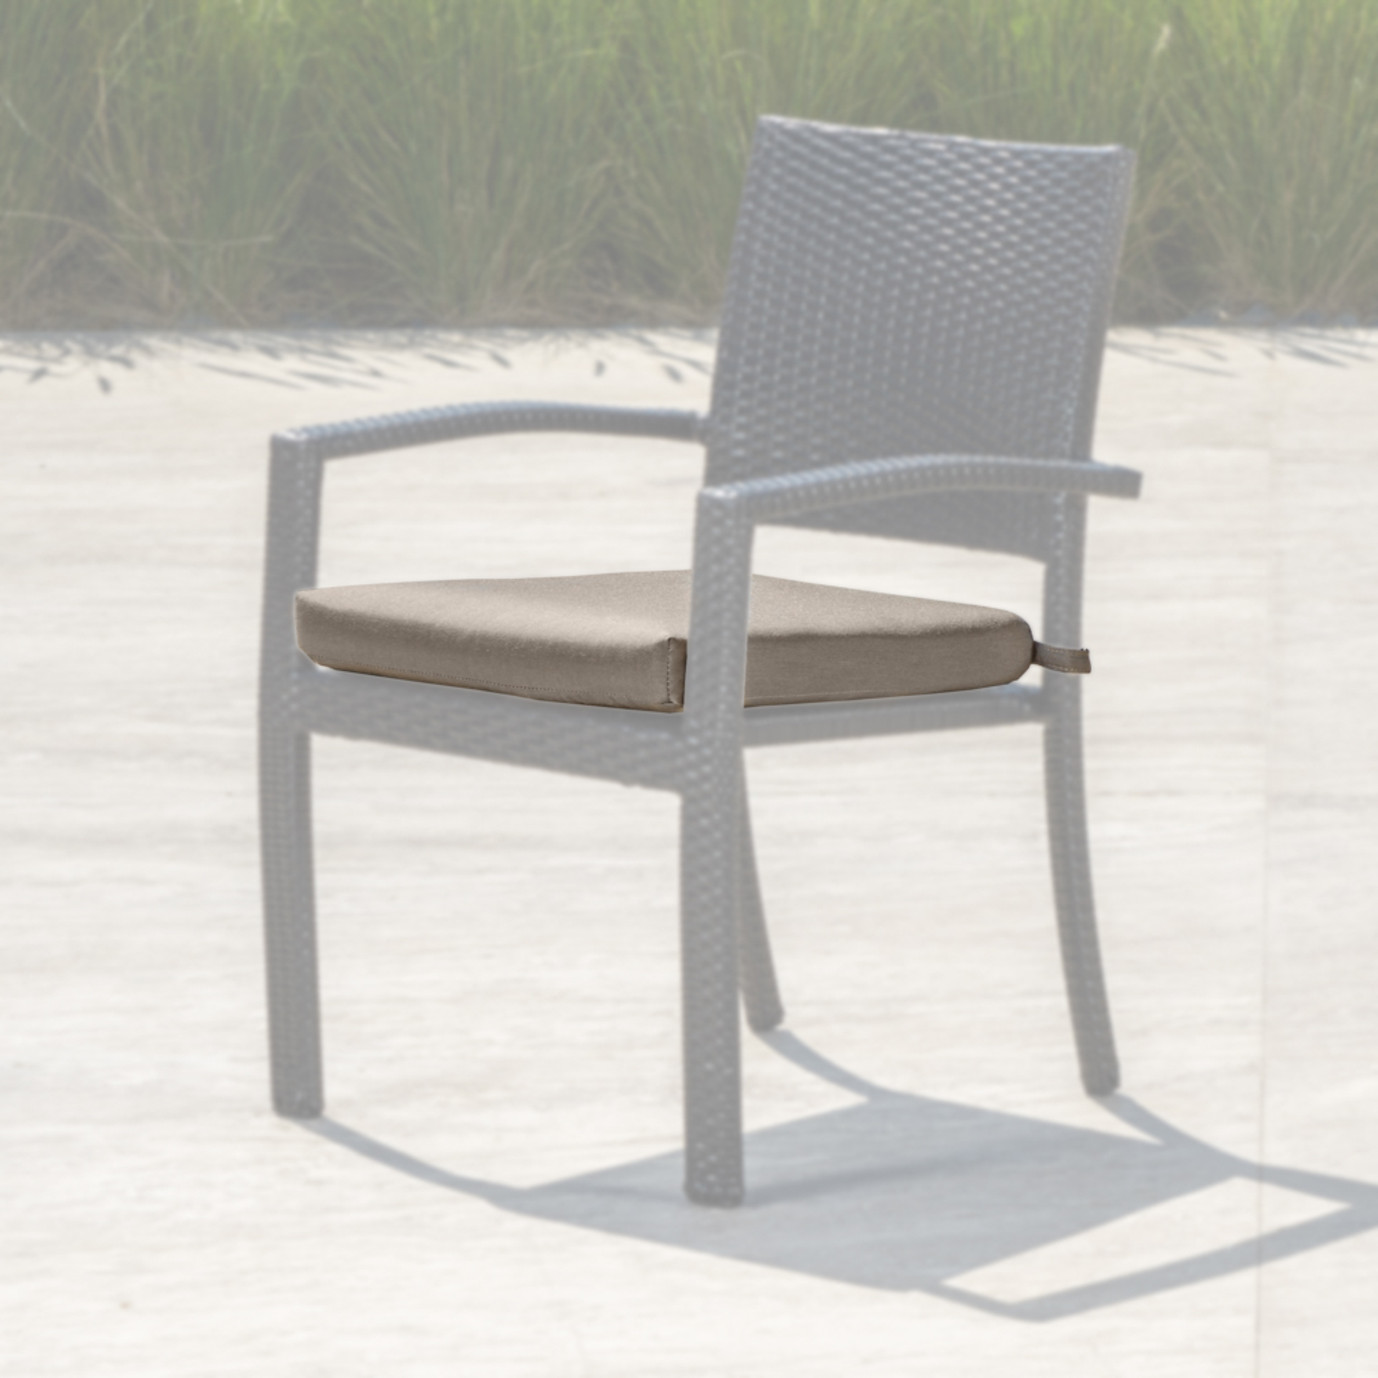 Portofino™ Comfort Dining Chair Cushion - Taupe